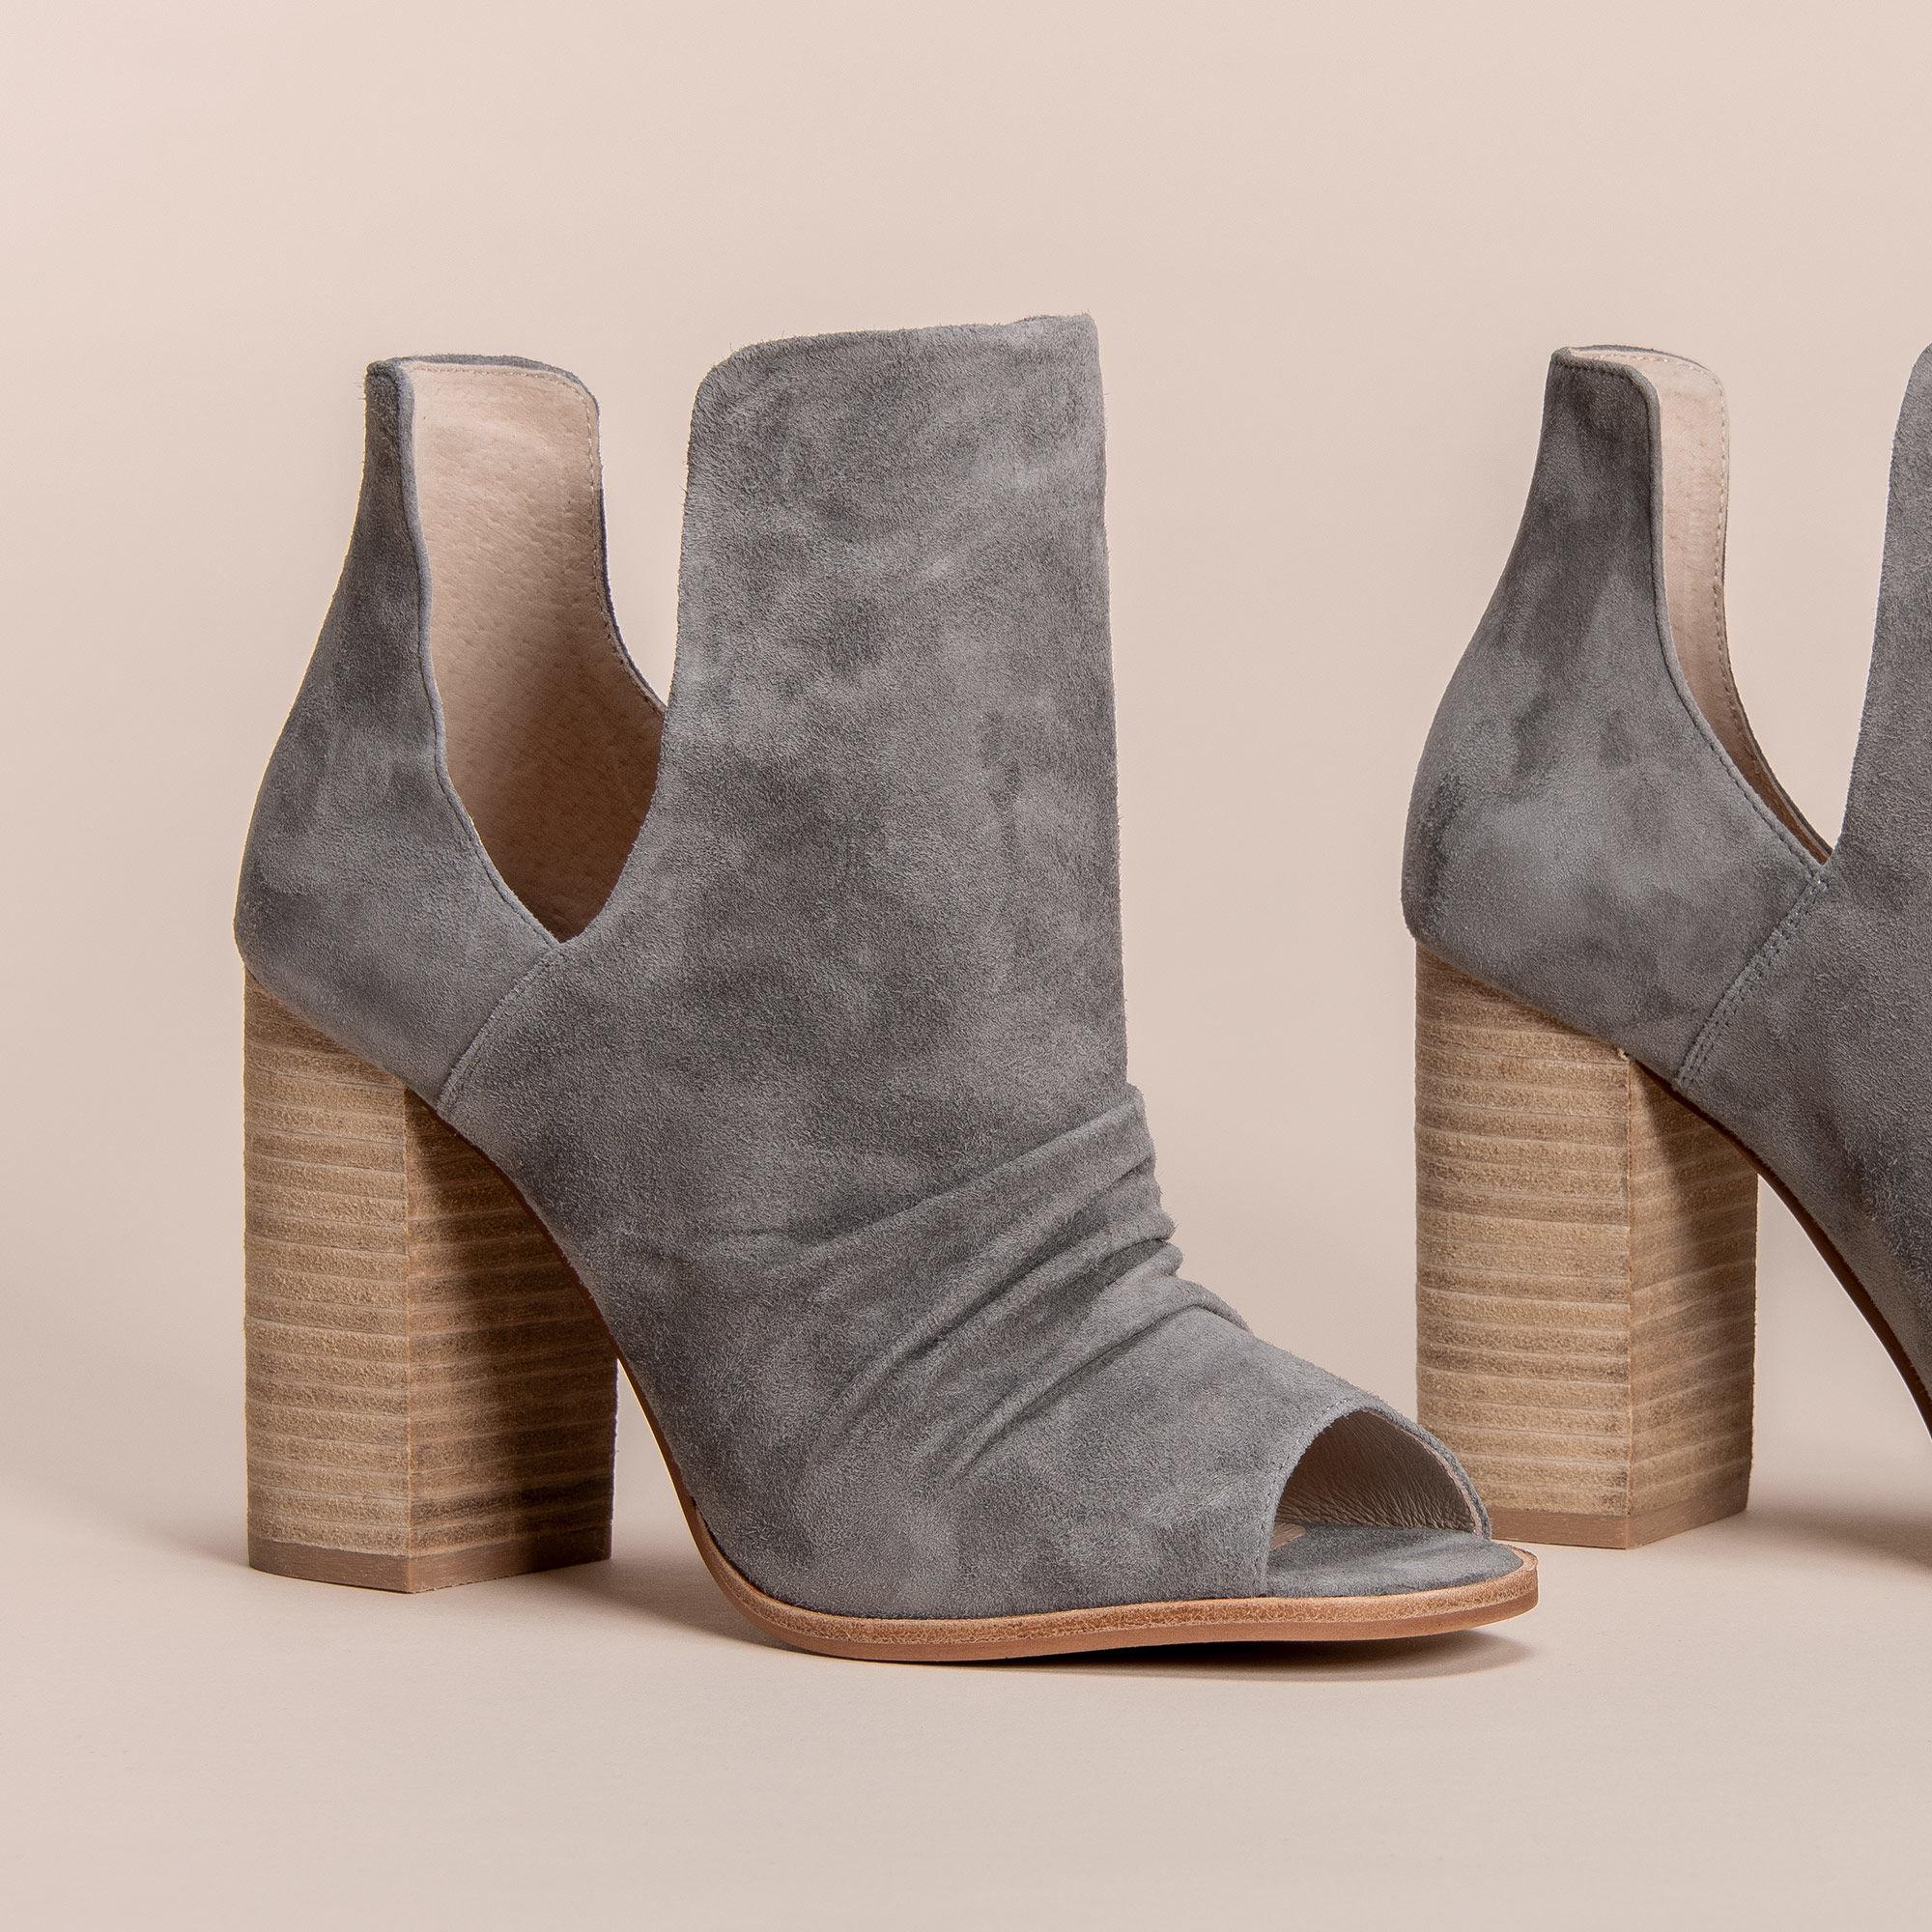 a1b8ca9c263 Lyst - Chinese Laundry Leena Peep Toe Bootie in Gray